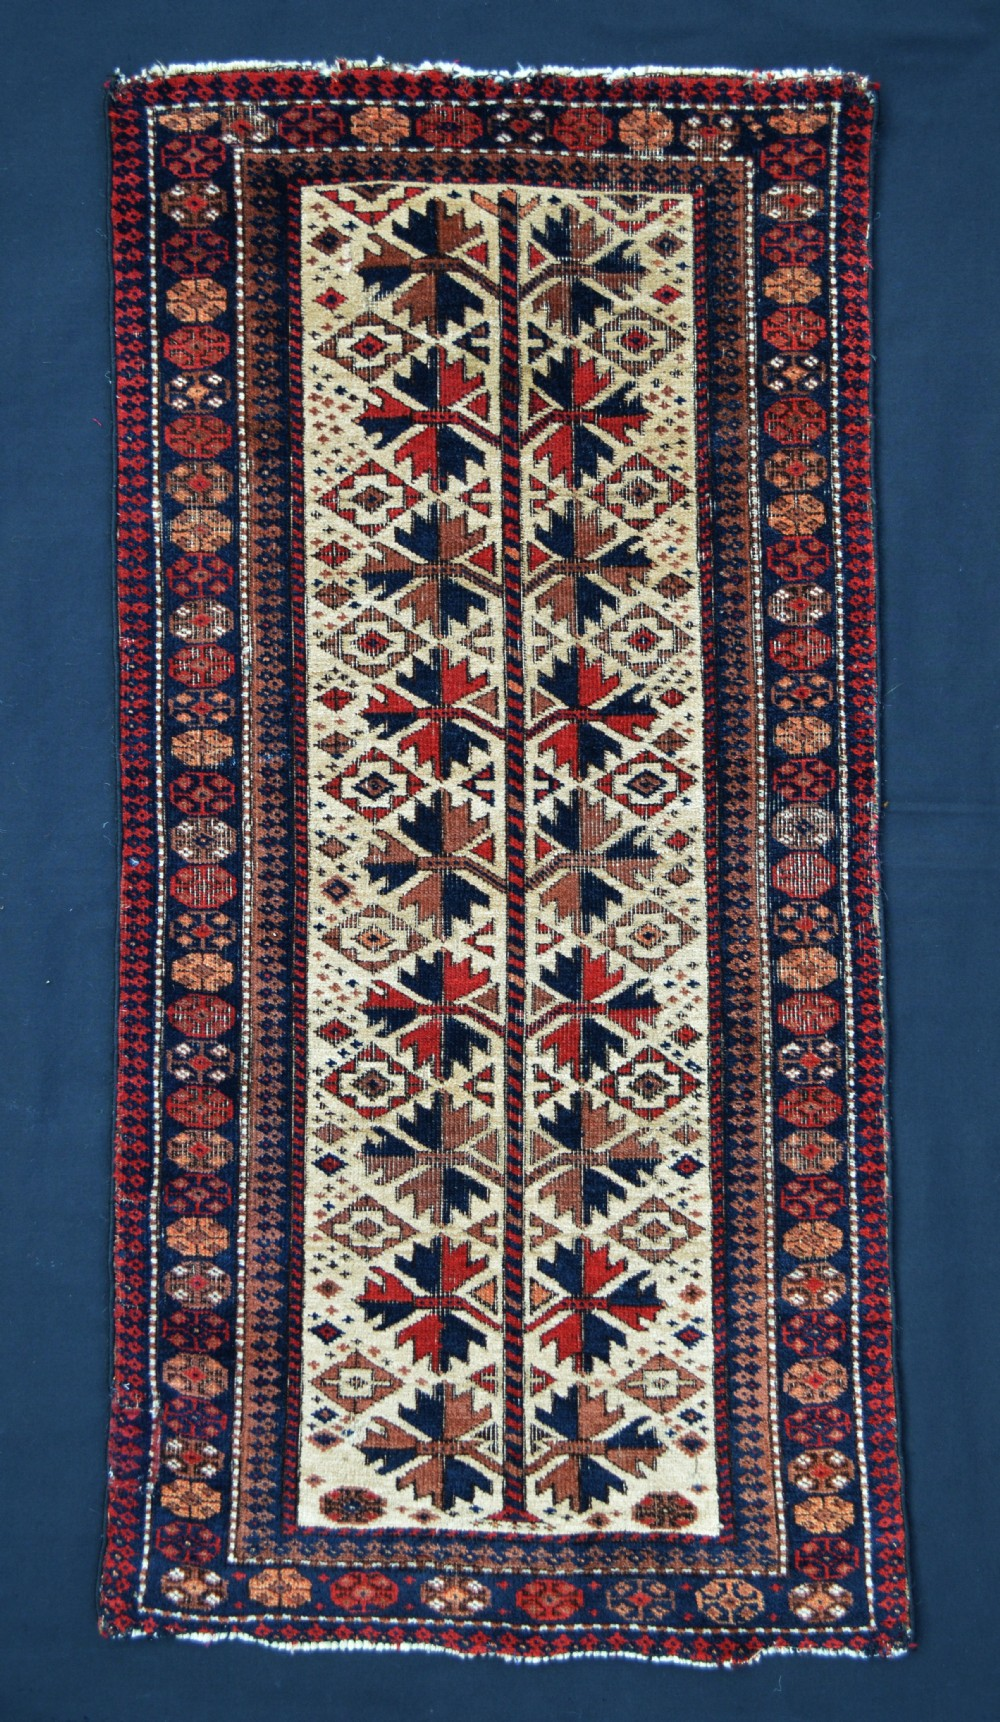 antique balisht pillow bagface timuri yaqoubkhani tribe borderlands of east persiawest afghanistan